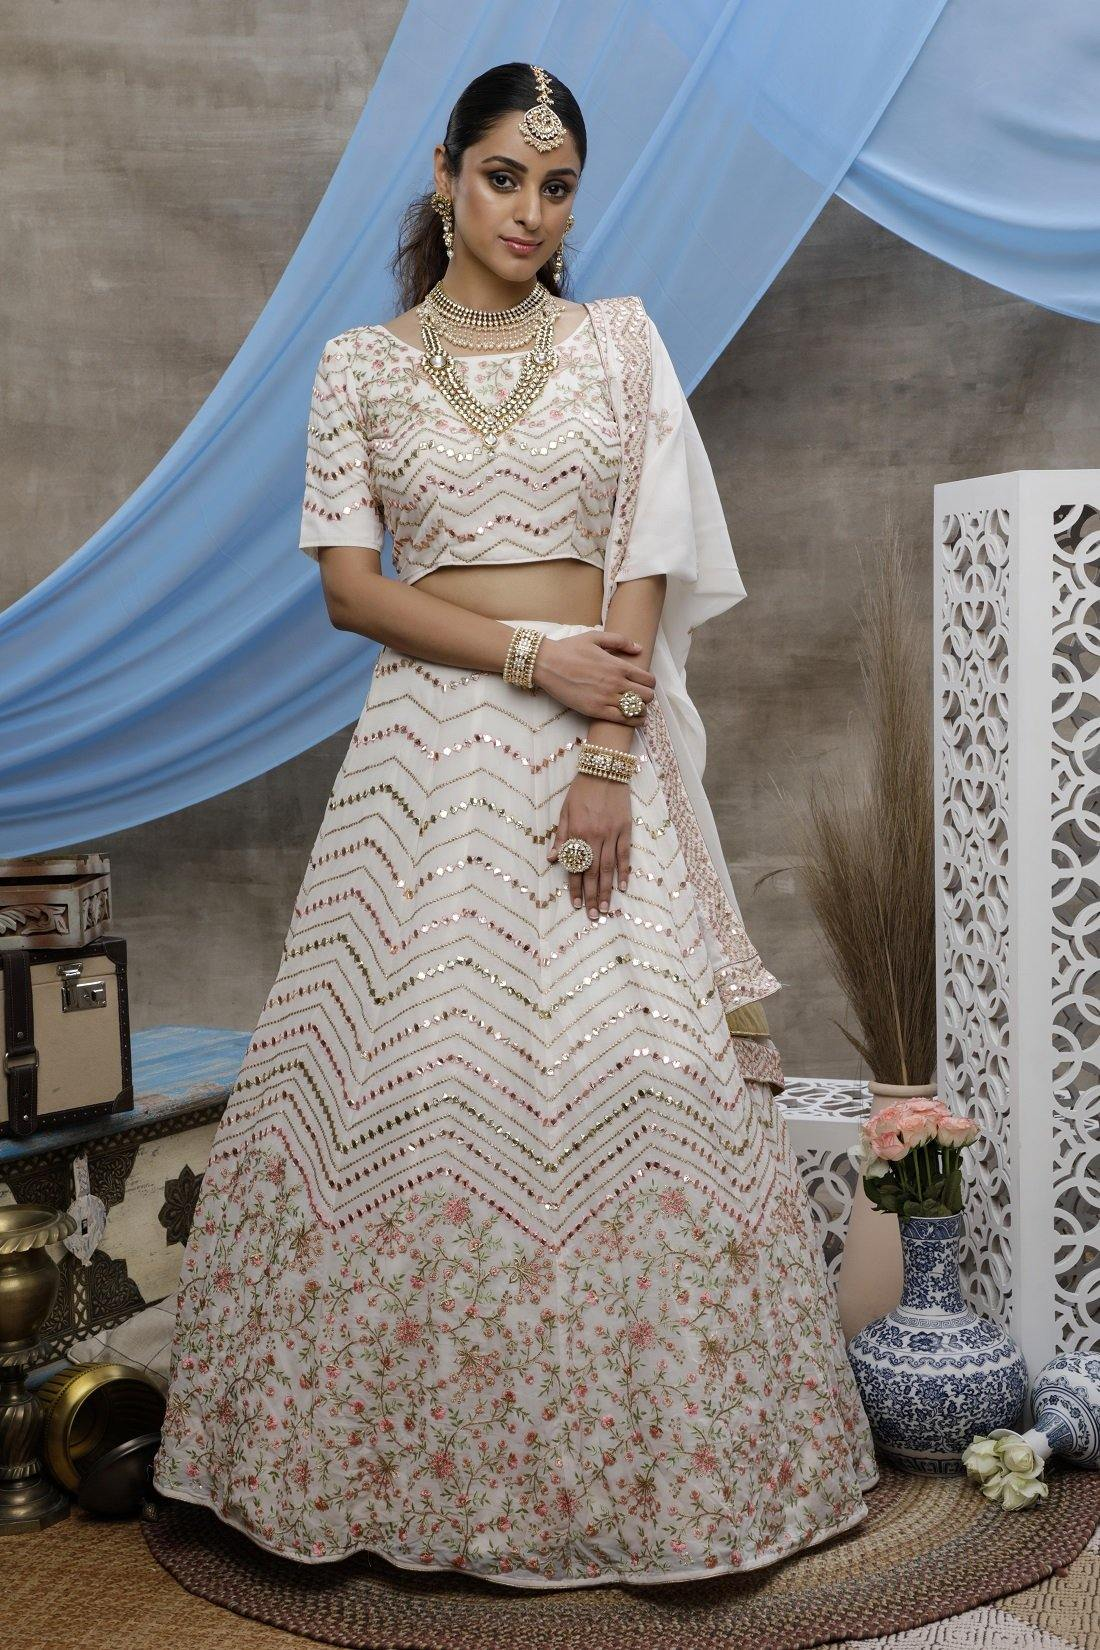 Rent Pearl White Georgette Bridal Lehenga Choli with Thread, gota patti embroidered work